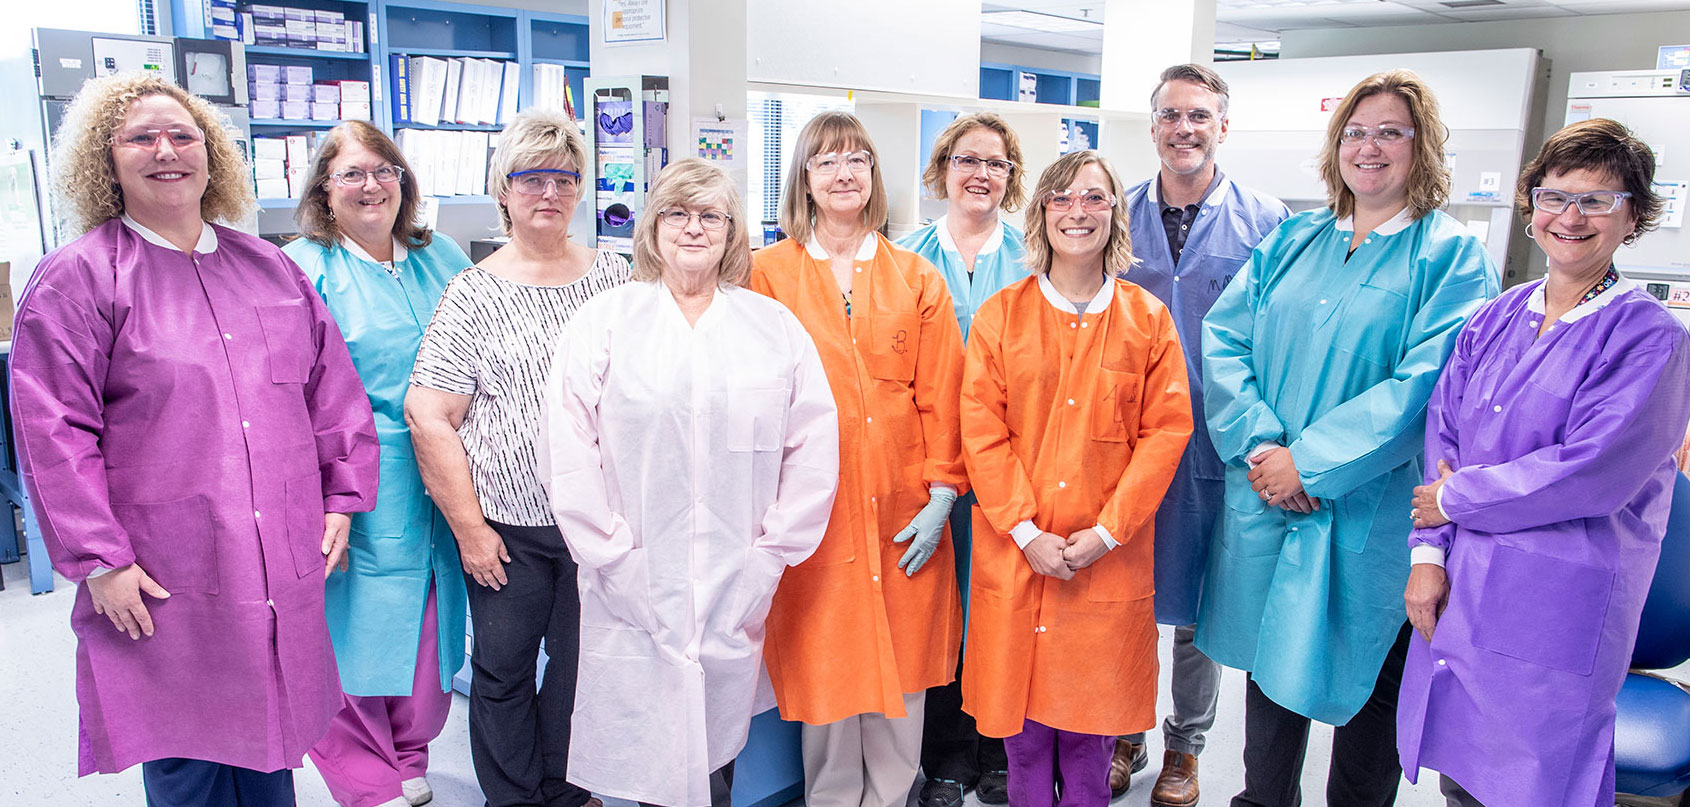 ORISE Beryllium Testing Laboratory staff pose for a group photo